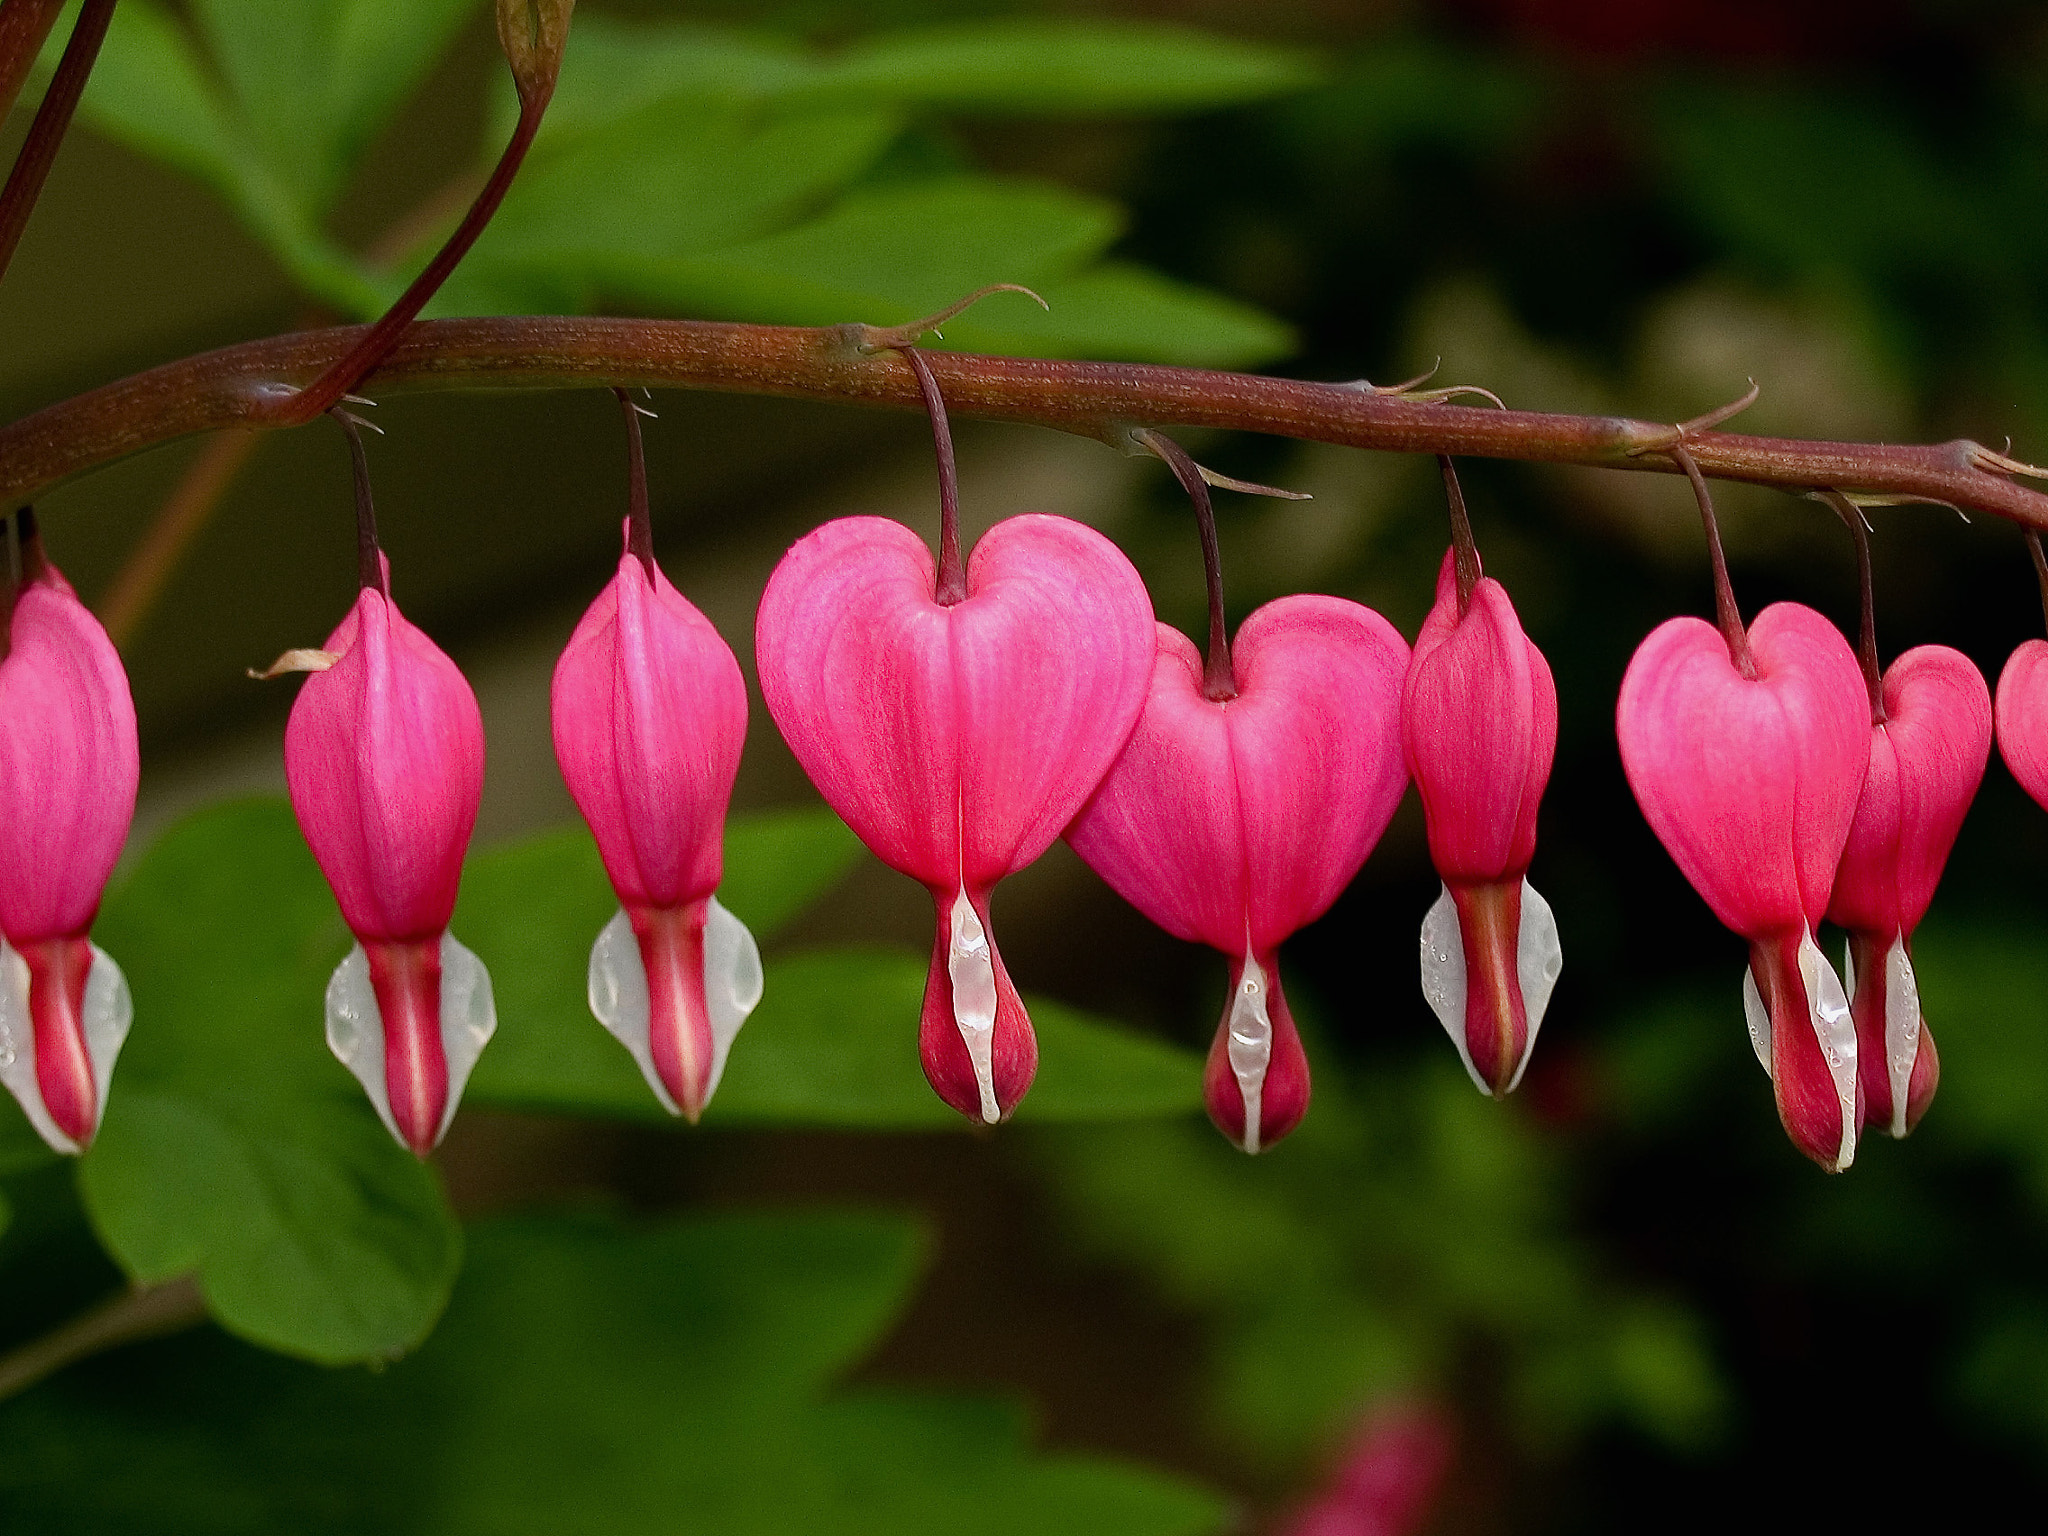 Photograph Bleeding Hearts by Steve Foster on 500px